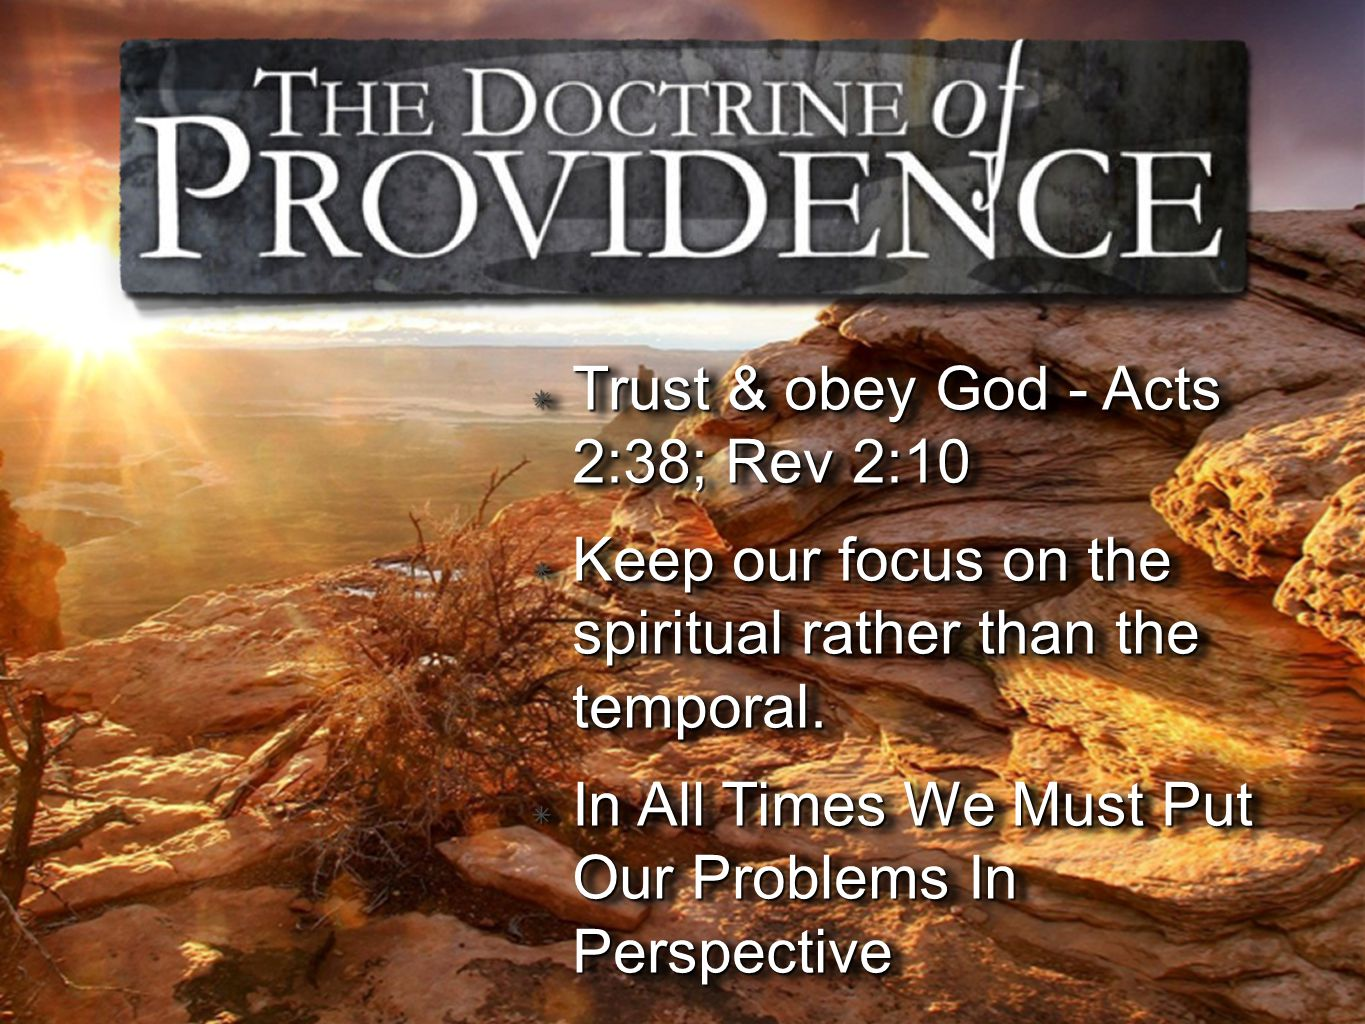 Trust & obey God - Acts 2:38; Rev 2:10 Keep our focus on the spiritual rather than the temporal.